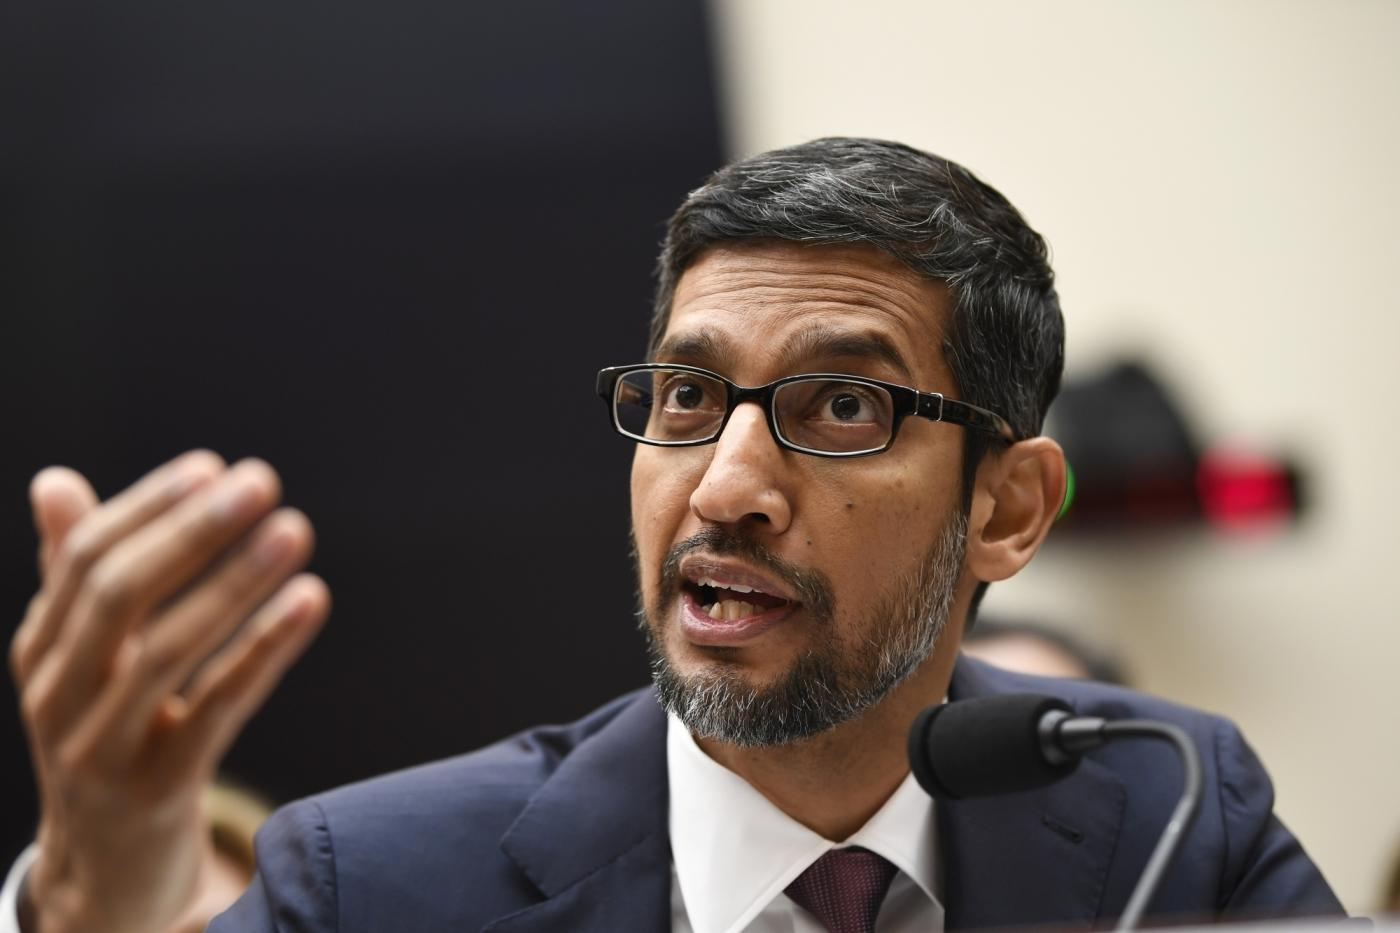 "WASHINGTON, Dec. 11, 2018 (Xinhua) -- Google CEO Sundar Pichai testifies before U.S. House of Representatives Judiciary Committee during a hearing ""Transparency & Accountability: Examining Google and its Data Collection, Use and Filtering Practices"" on Capitol Hill in Washington D.C., the United States, on Dec. 11, 2018. (Xinhua/Liu Jie/IANS) by ."